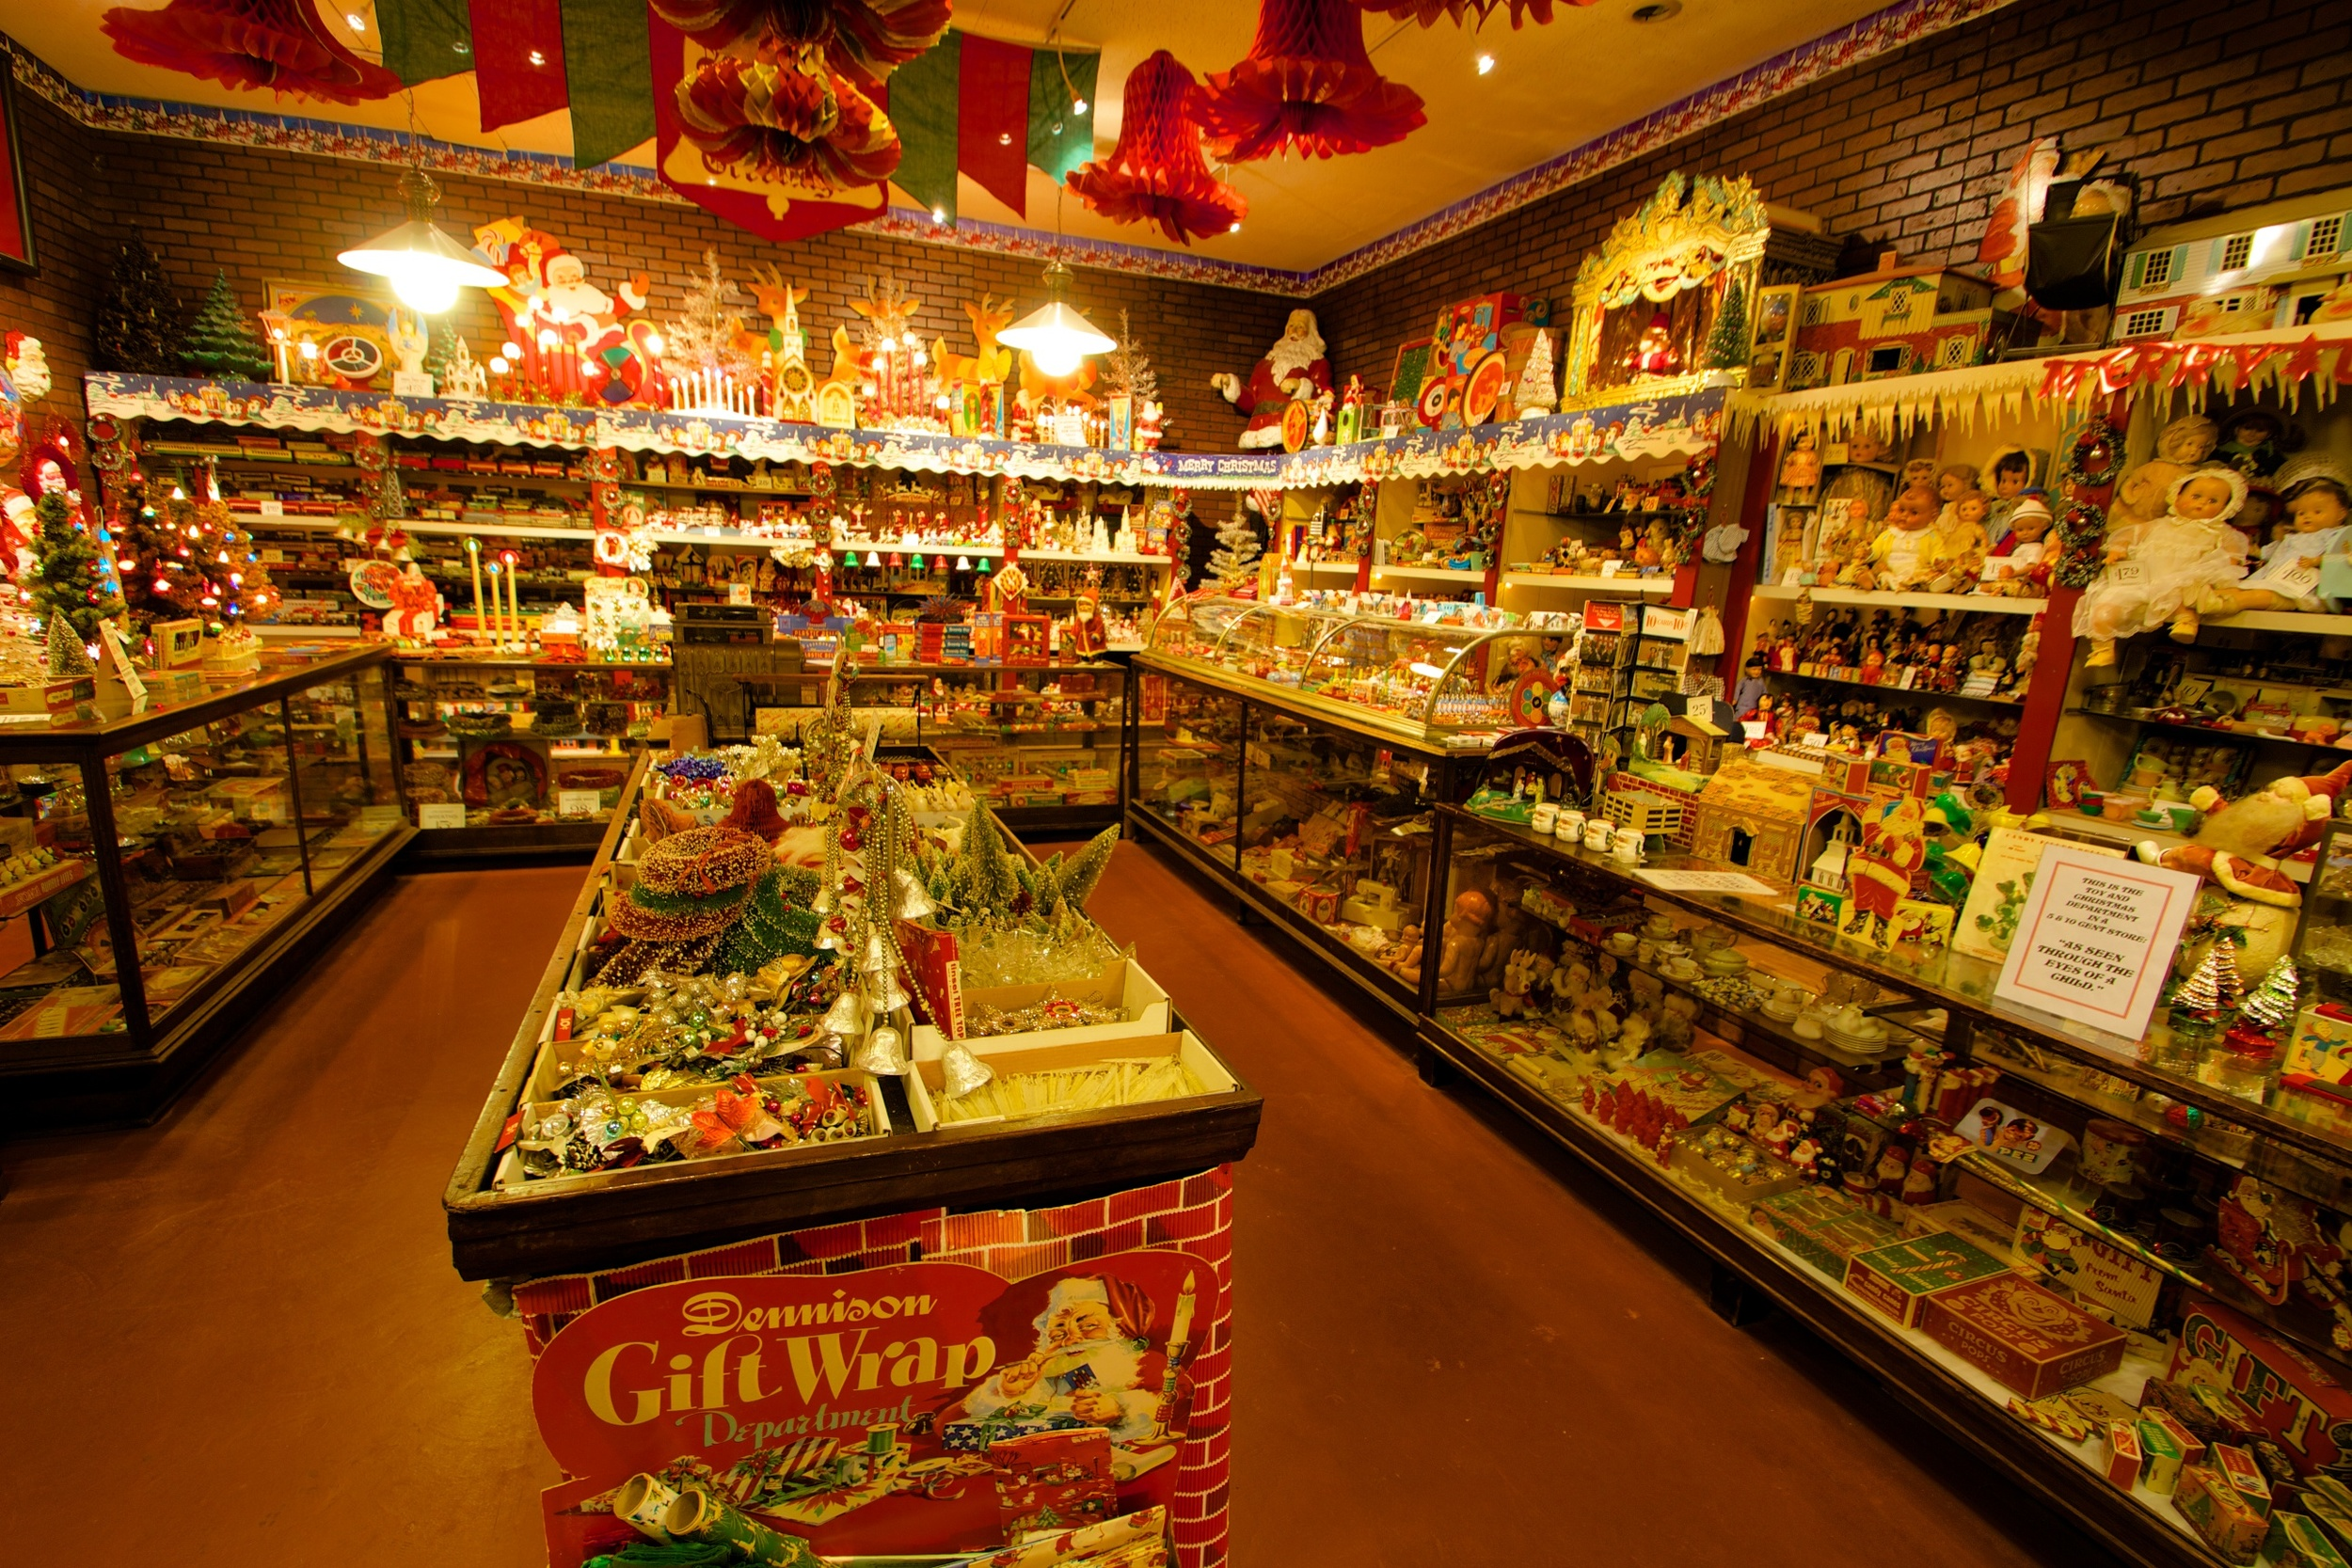 Figure 3: This exhibit at the National Christmas Center recreates an early Woolworths five-and-dime store at Christmastime. The first successful Woolworths opened in Lancaster, Pennsylvania, in 1879.